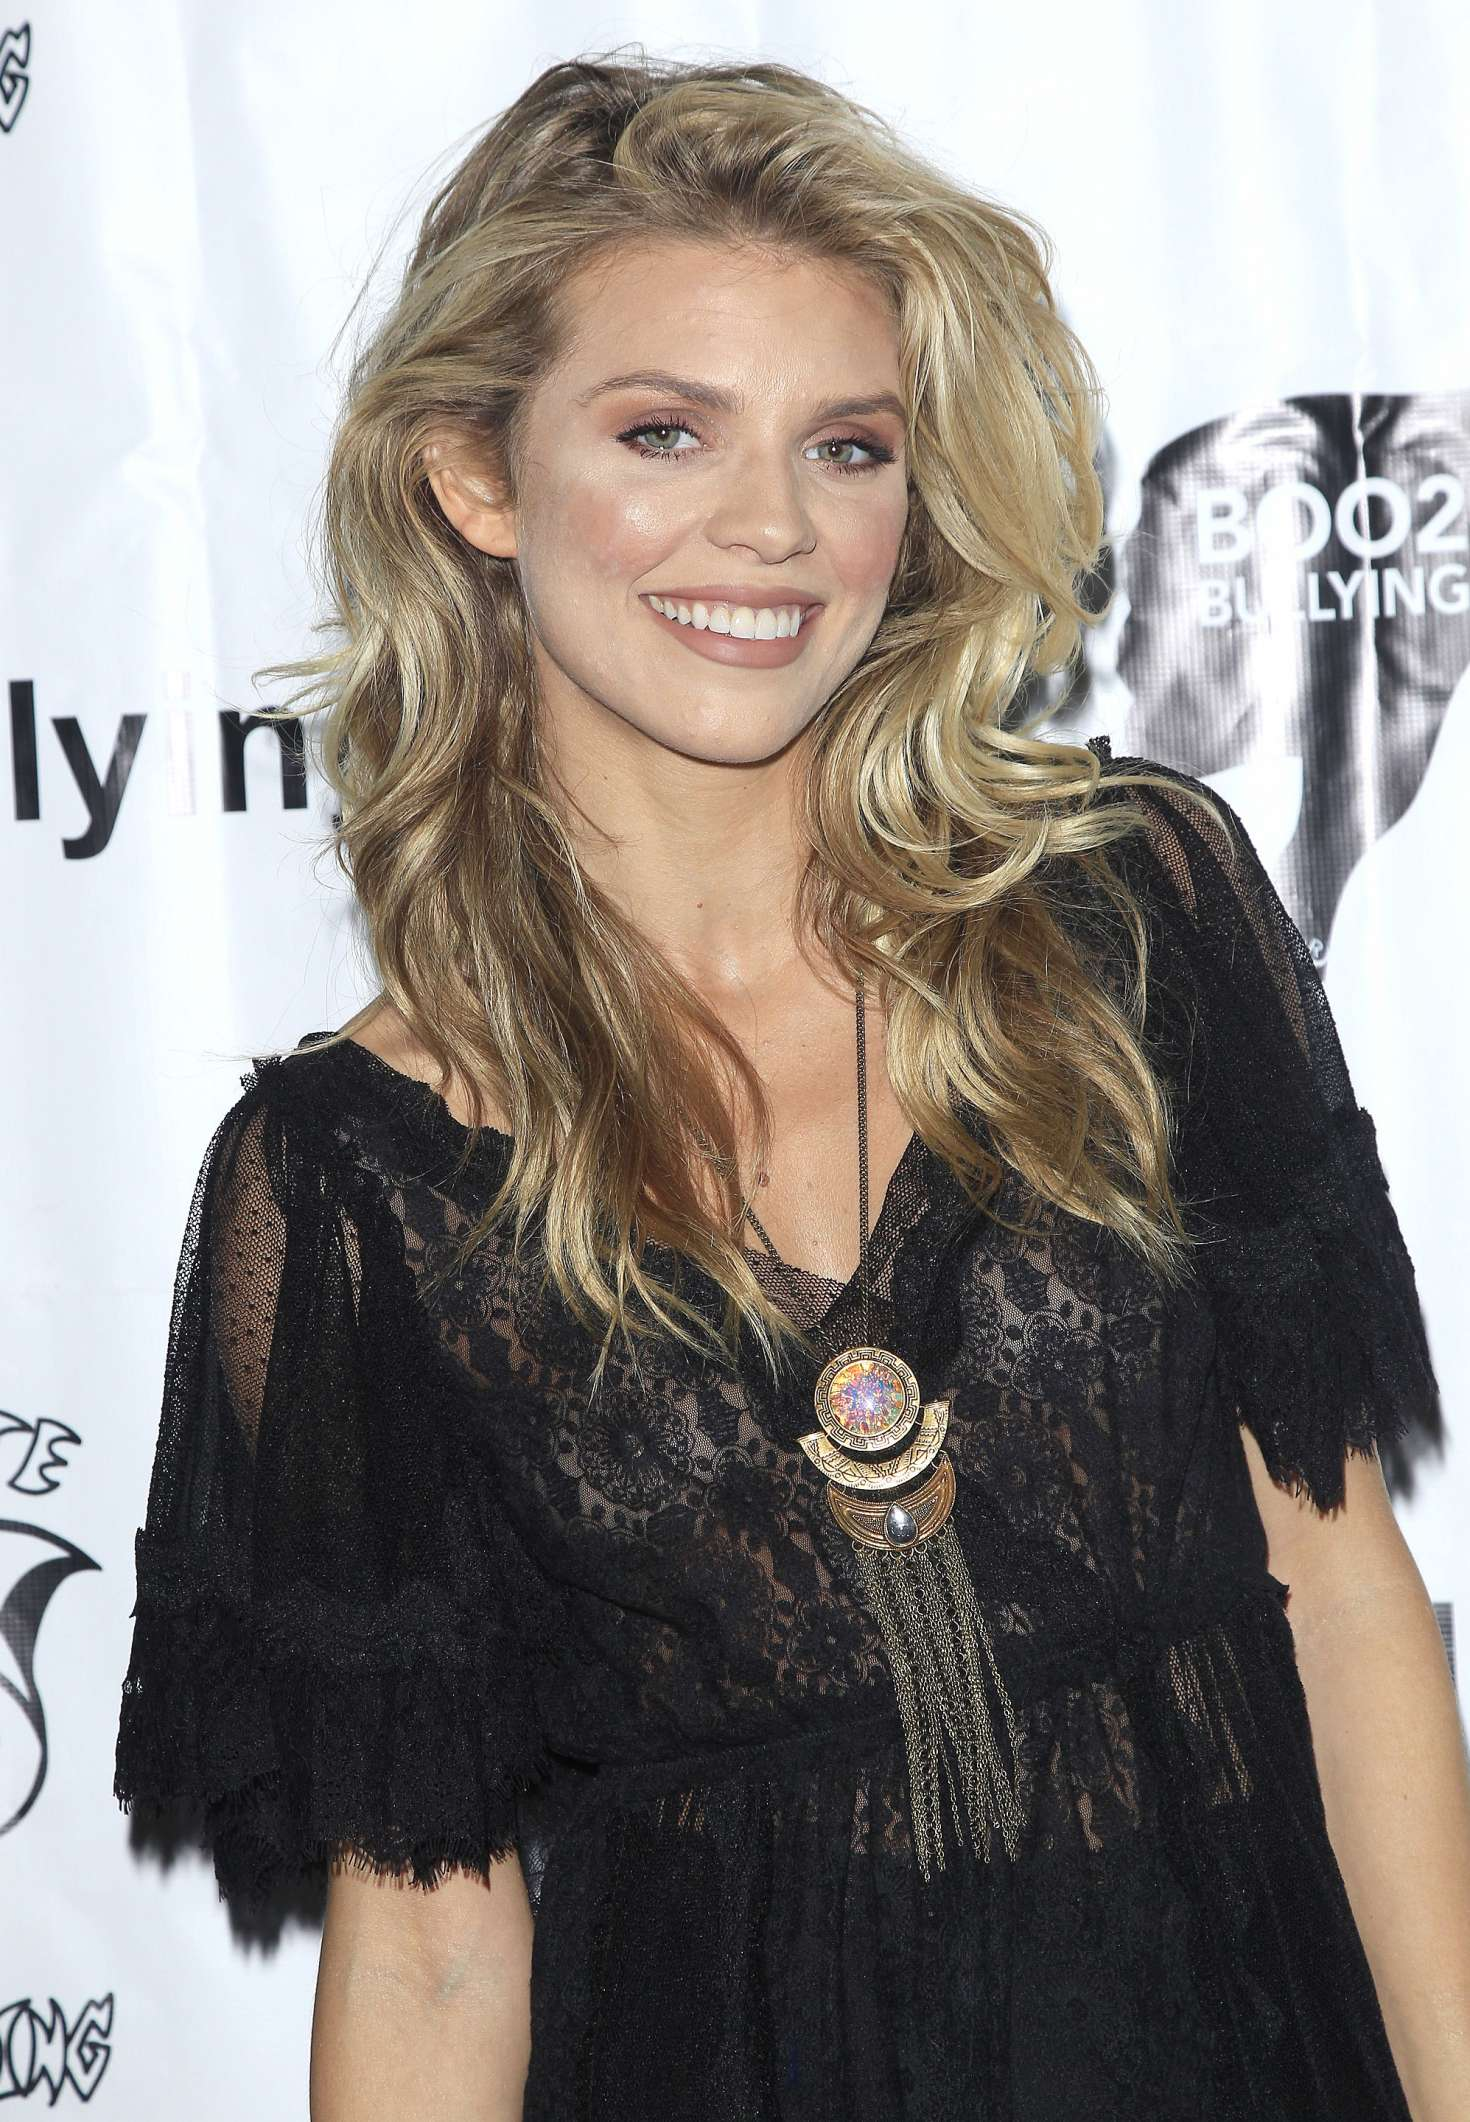 AnnaLynne McCord - 3rd Annual Take a Bite Out of Bullying Event in Hollywood